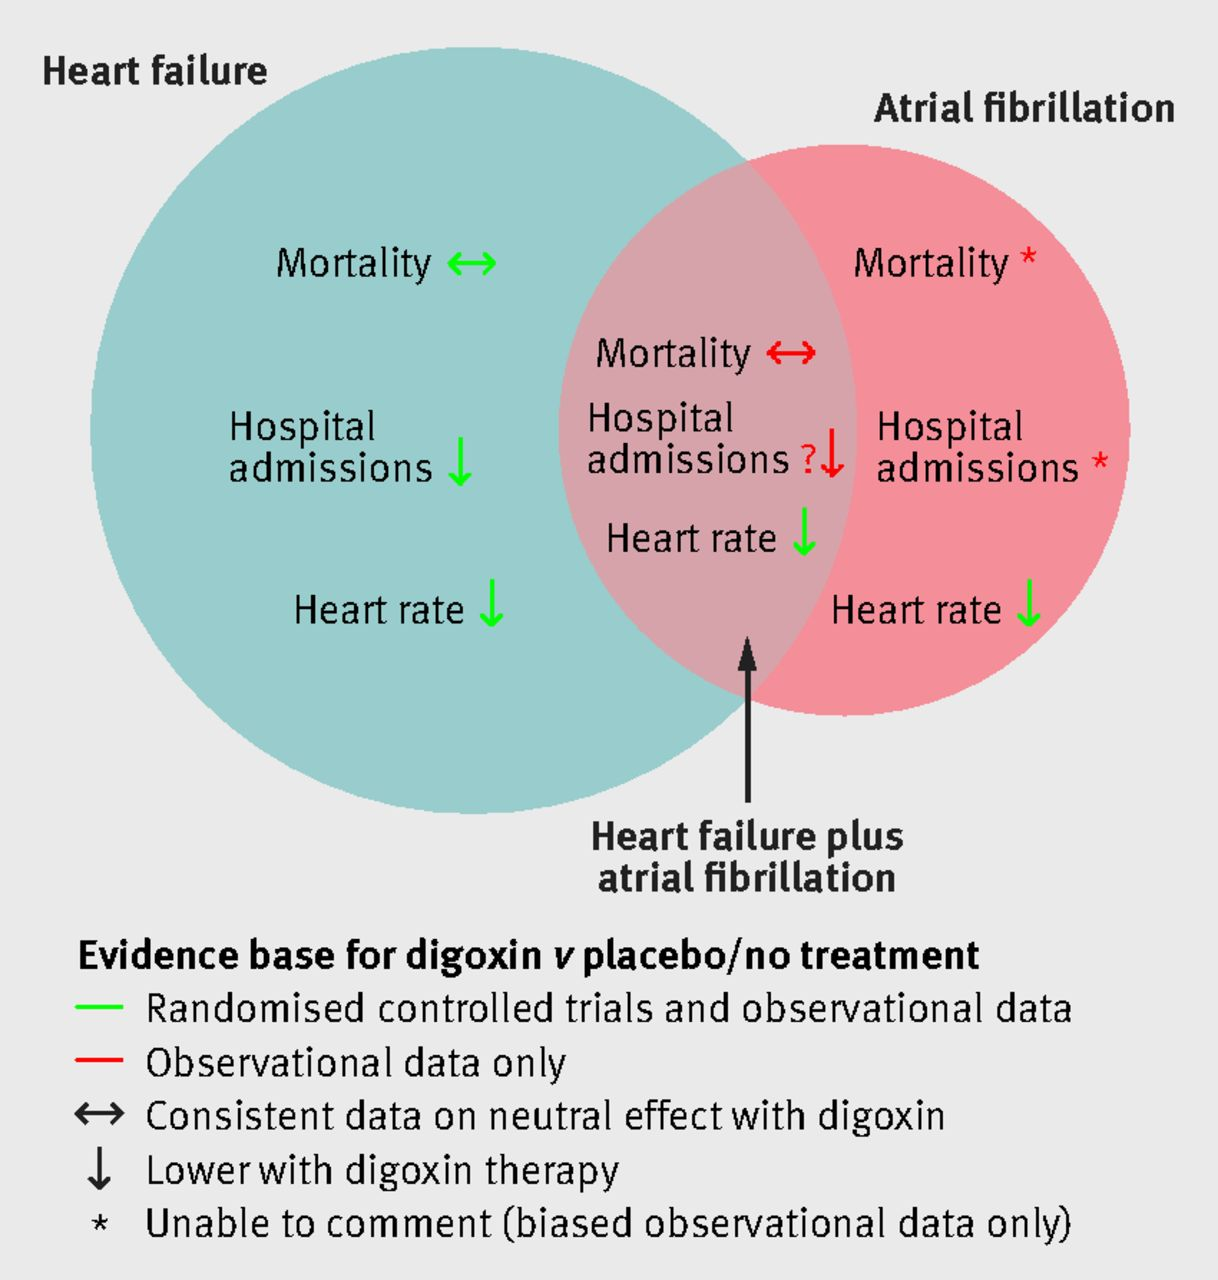 Safety and efficacy of digoxin: systematic review and meta-analysis ...